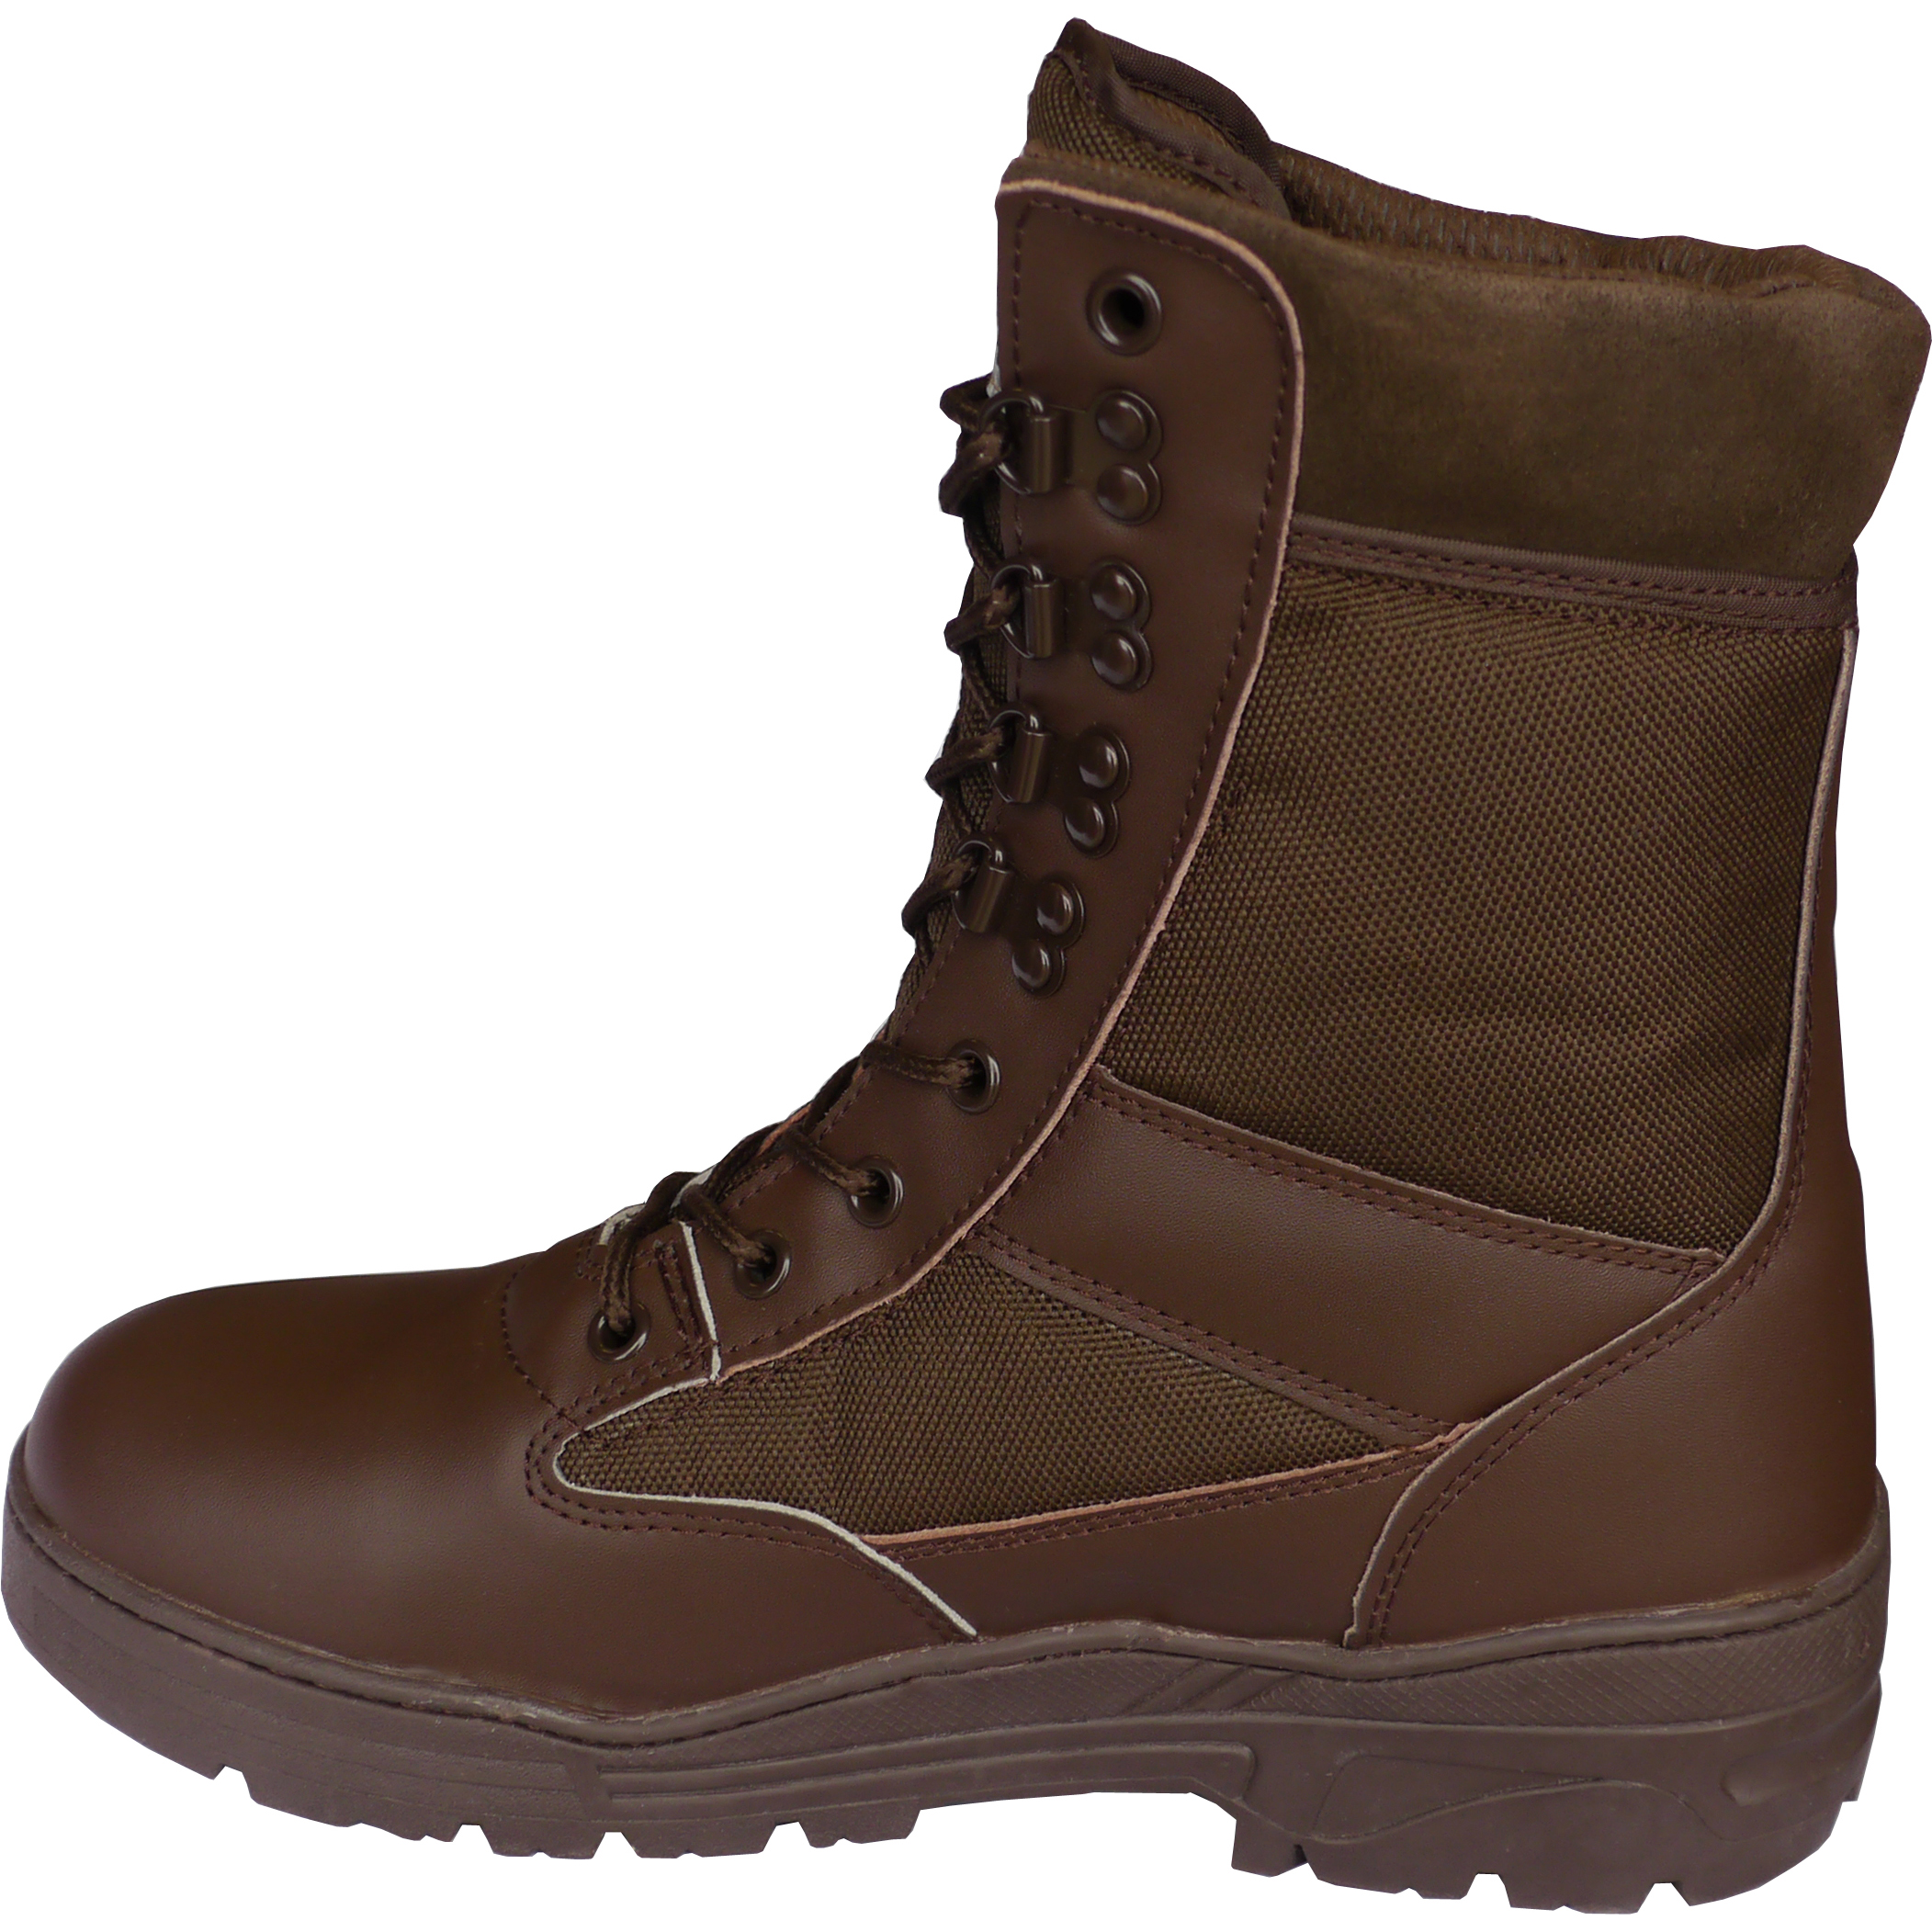 combat boots half leather brown outdoor wholesale